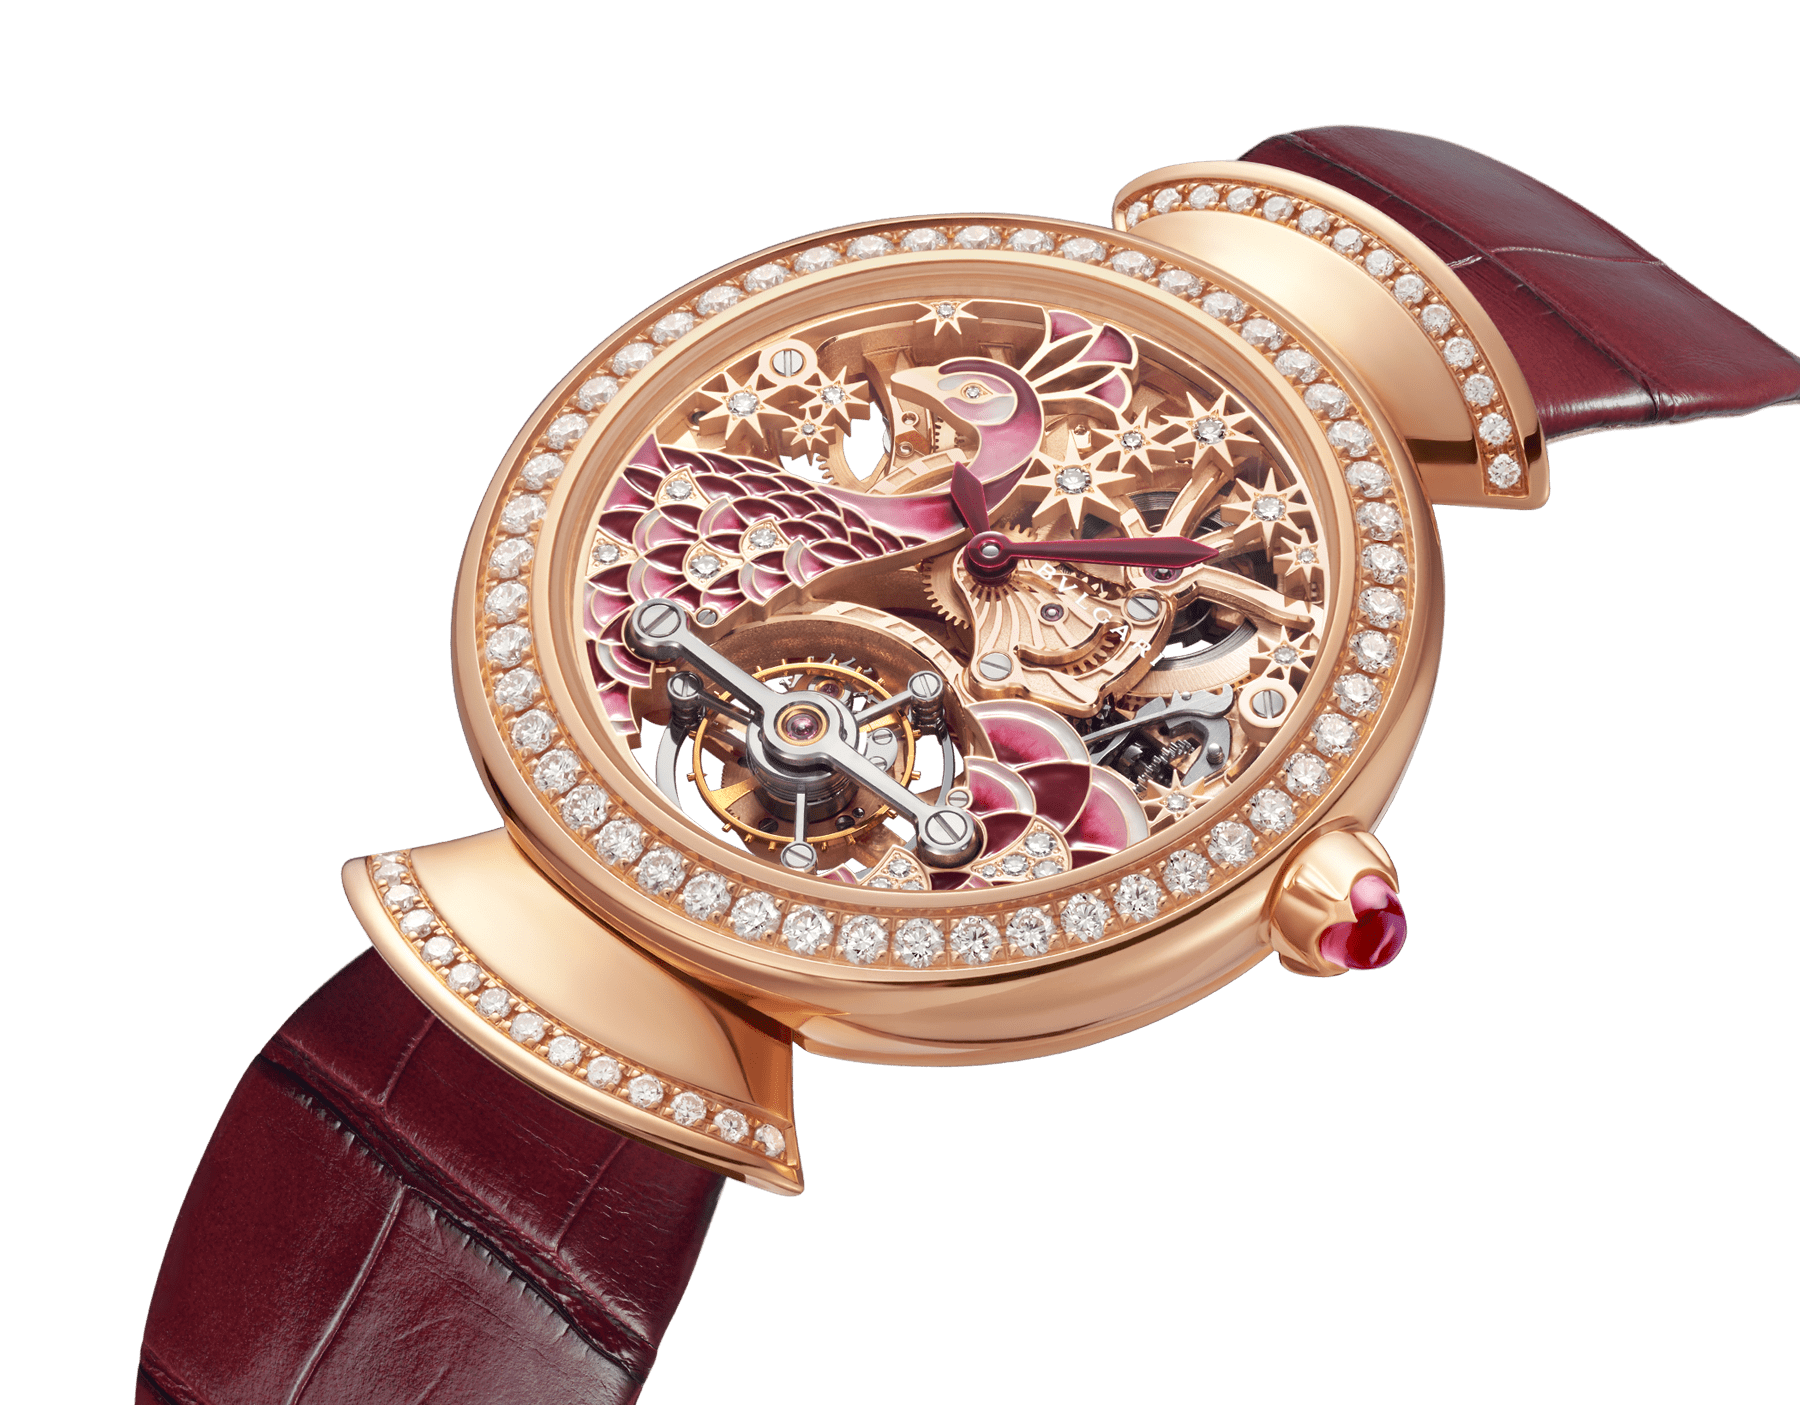 DIVAS' DREAM watch with skeletonised mechanical manufacture movement in 18 kt rose gold, tourbillon, manual winding, 18 kt rose gold case, 18 kt rose gold bezel and links set with brilliant-cut diamonds, 18 kt rose gold skeletonised dial decorated with hand-painted miniature motif of a peacock and stars made of brilliant-cut diamonds, transparent case back and pink alligator bracelet 103166 image 2